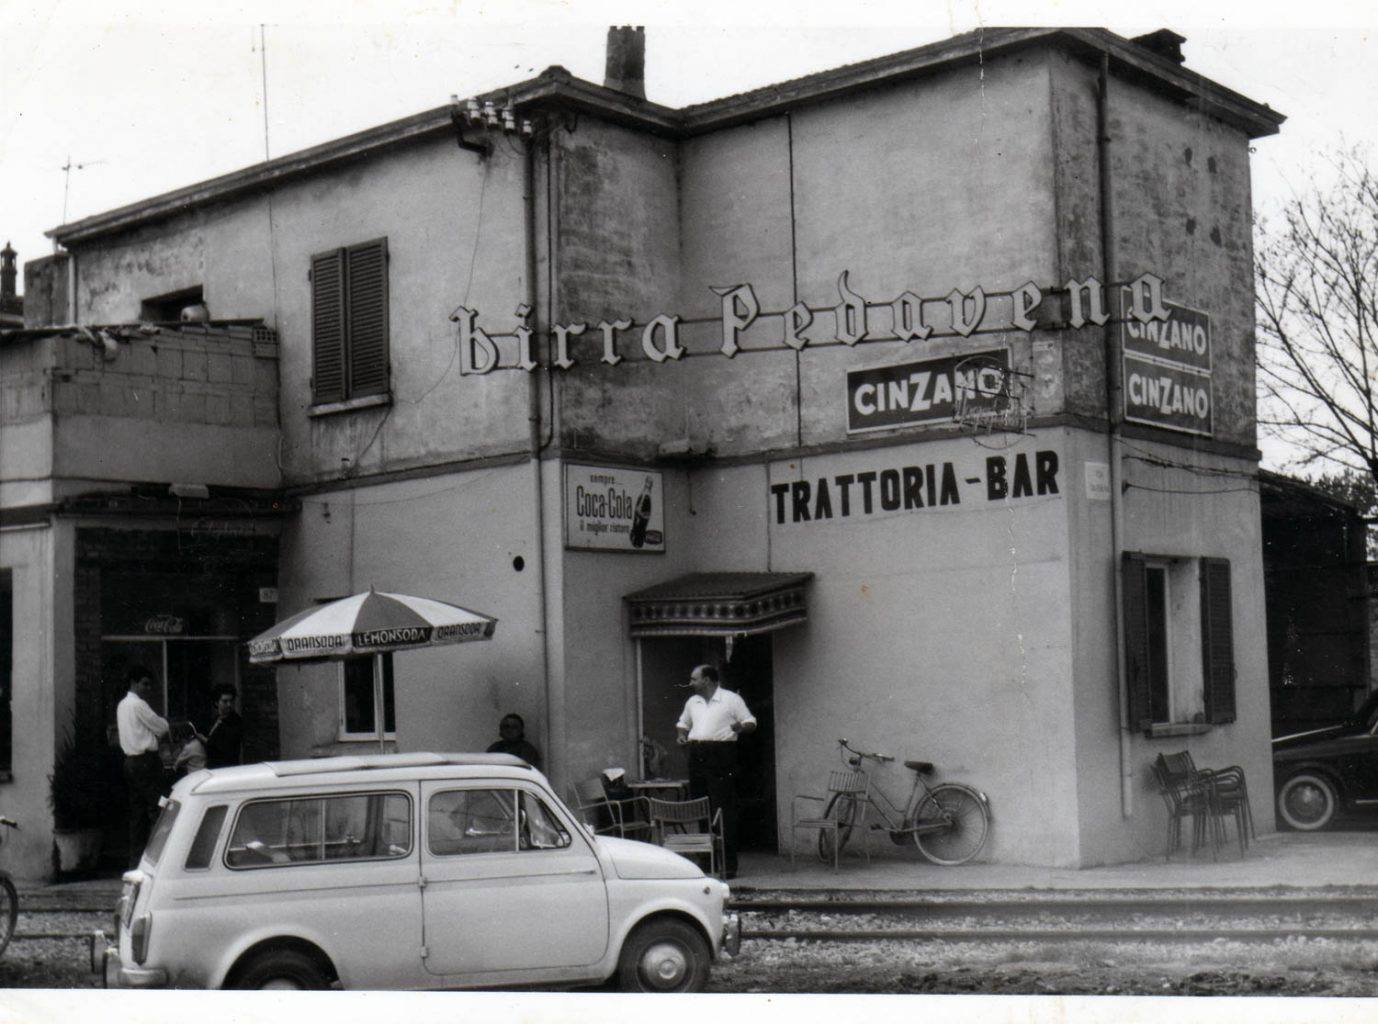 Fiat-in-bassano-del-grappa